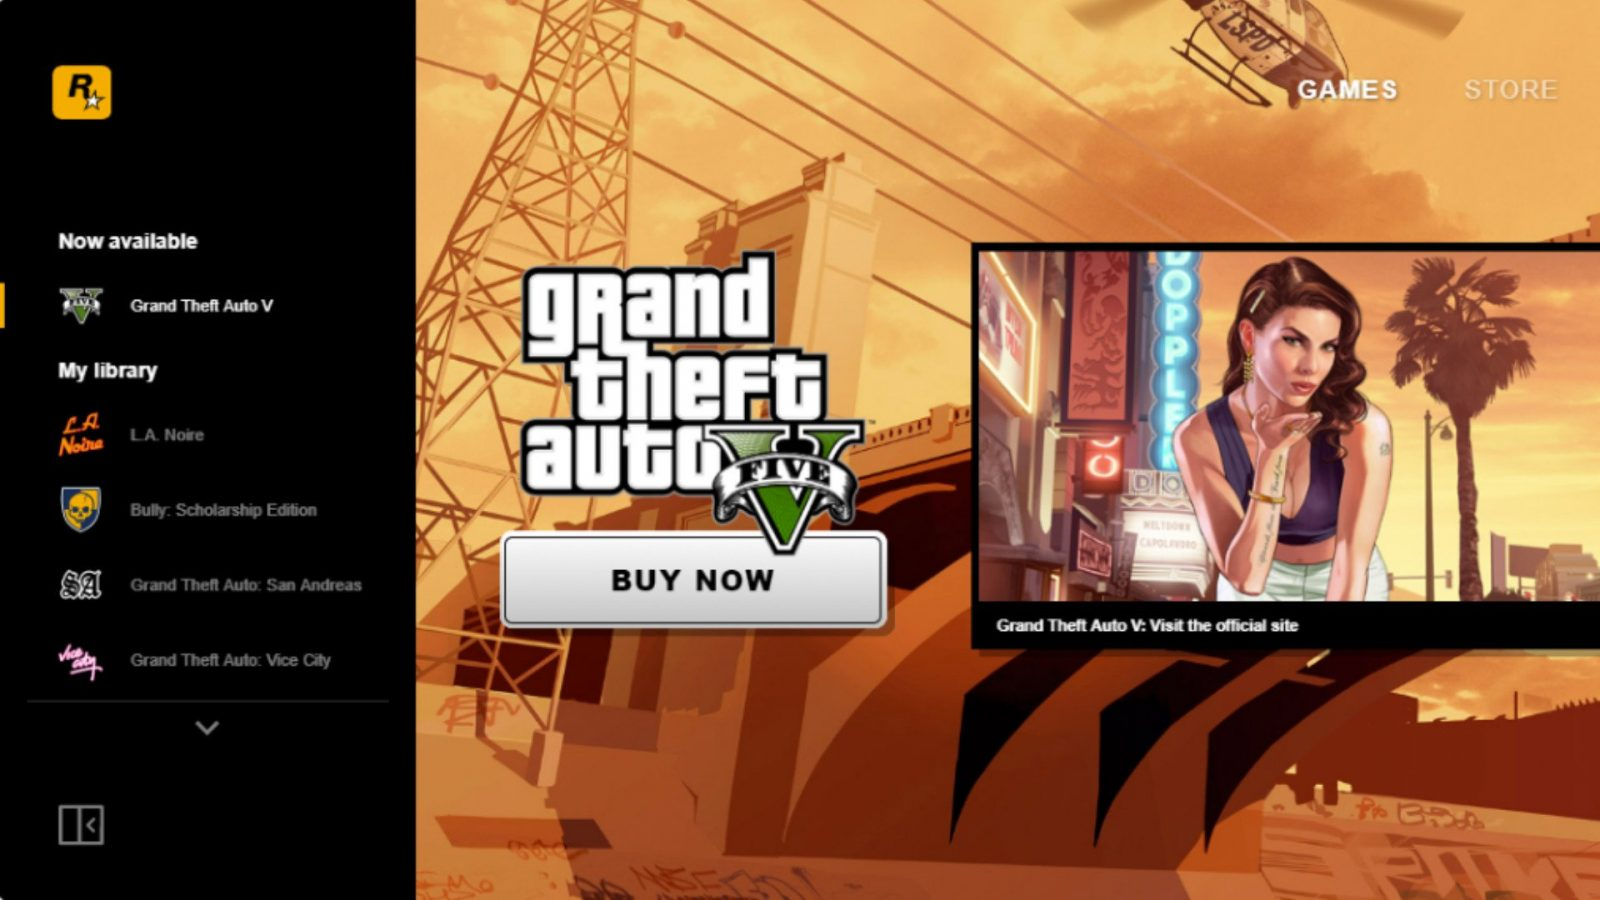 San Andreas for a Limited Time